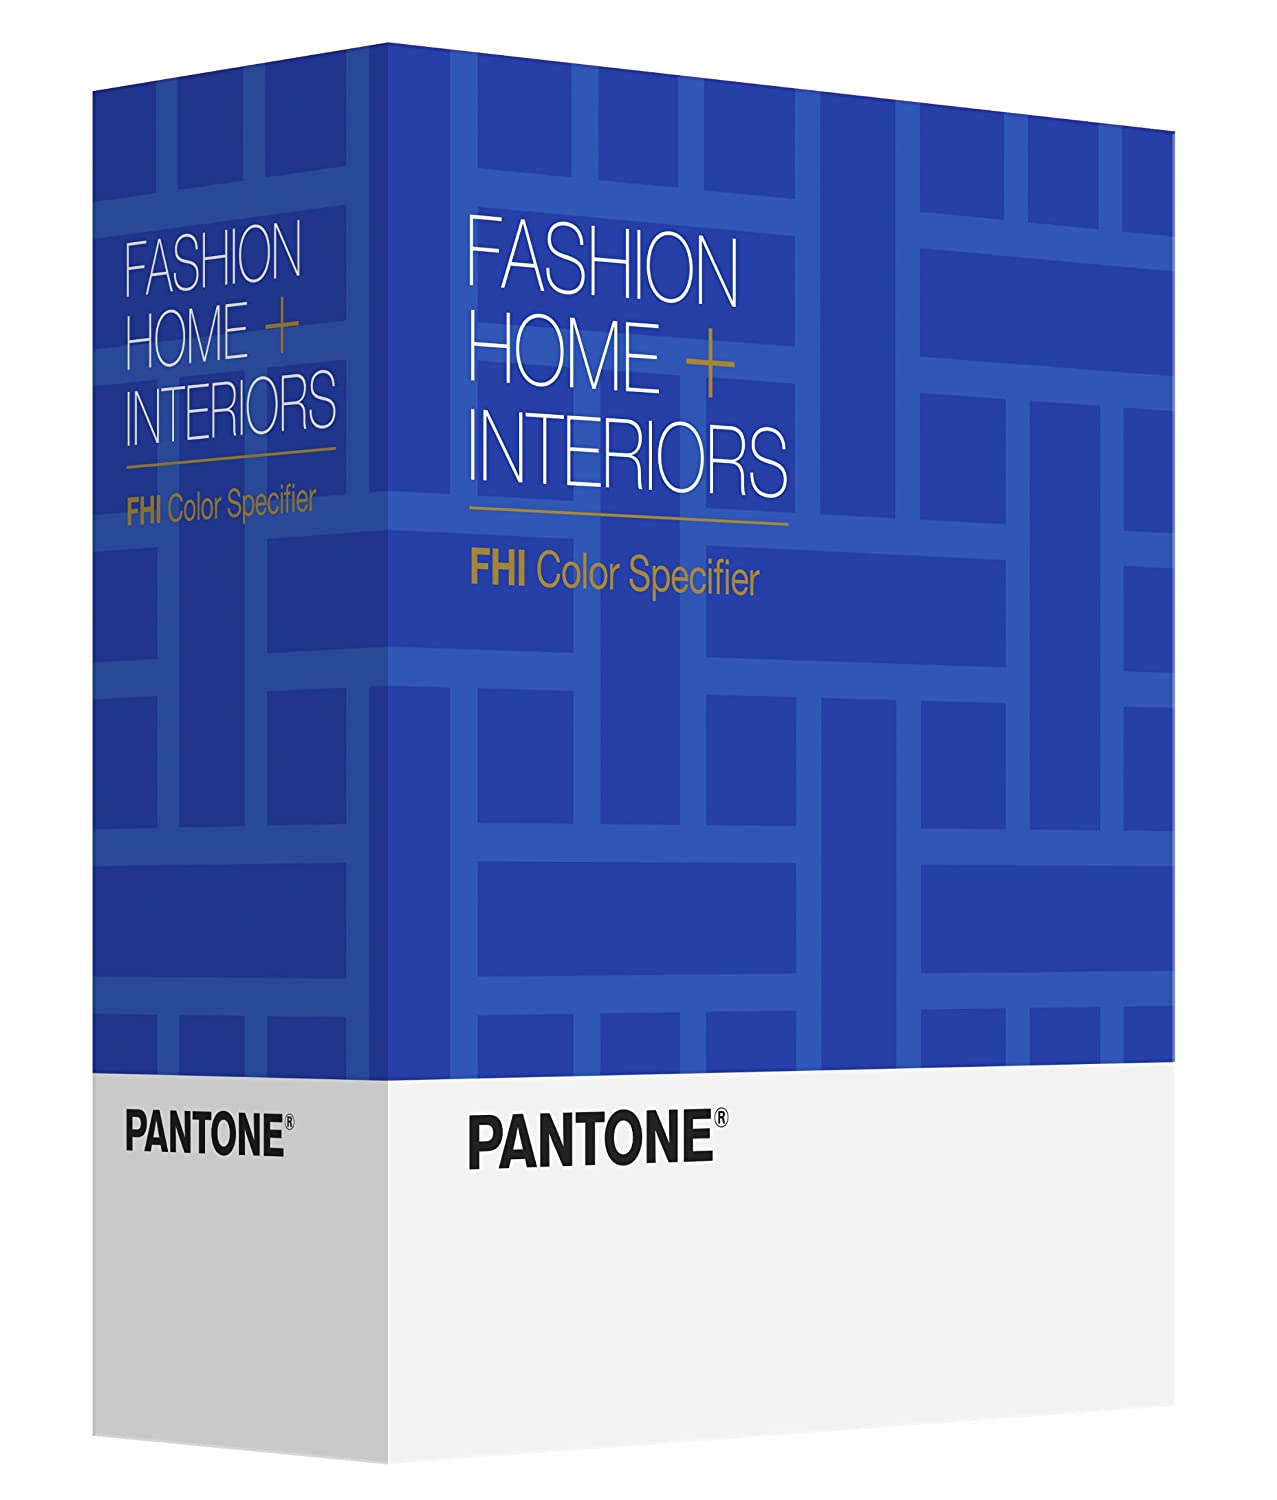 Amazon.com: PANTONE FBP200, Fashion And Home Color Specifier: Home  Improvement